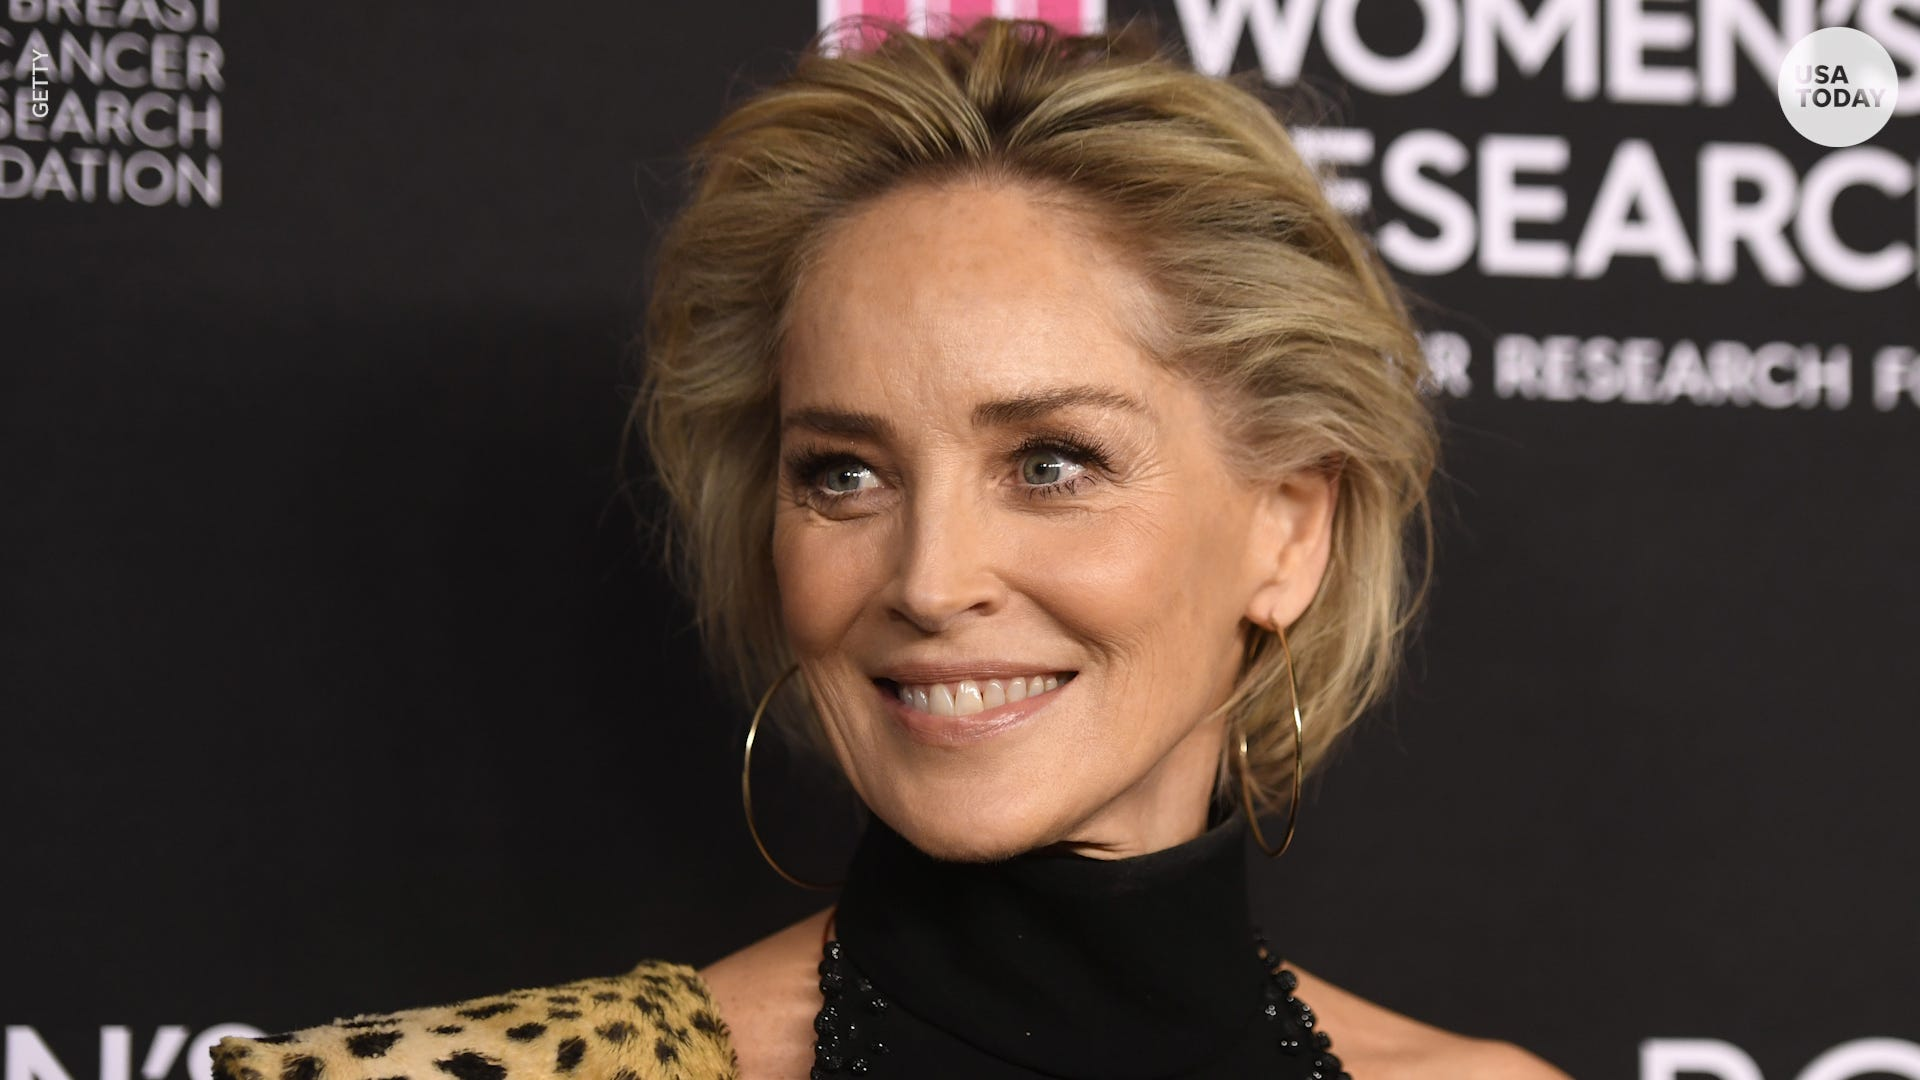 Sharon Stone's stroke impaled her career after nine-day brain bleed